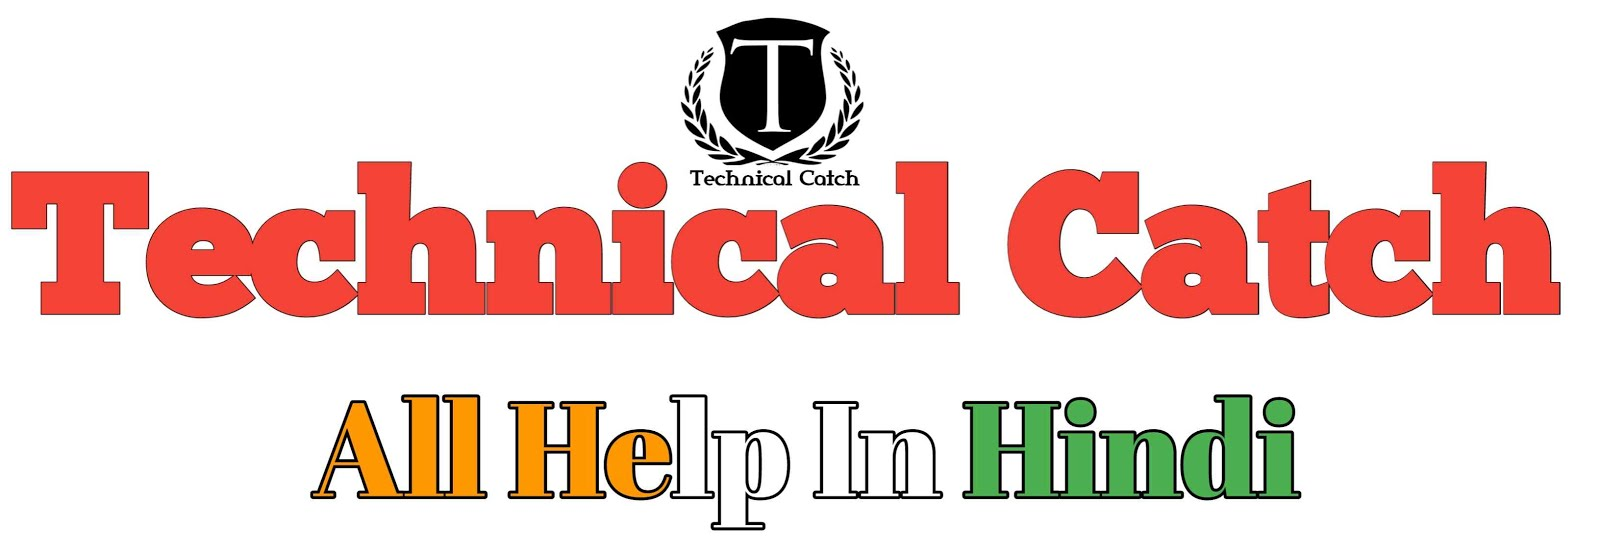 Technical Catch - Technology And Reviews in Hindi